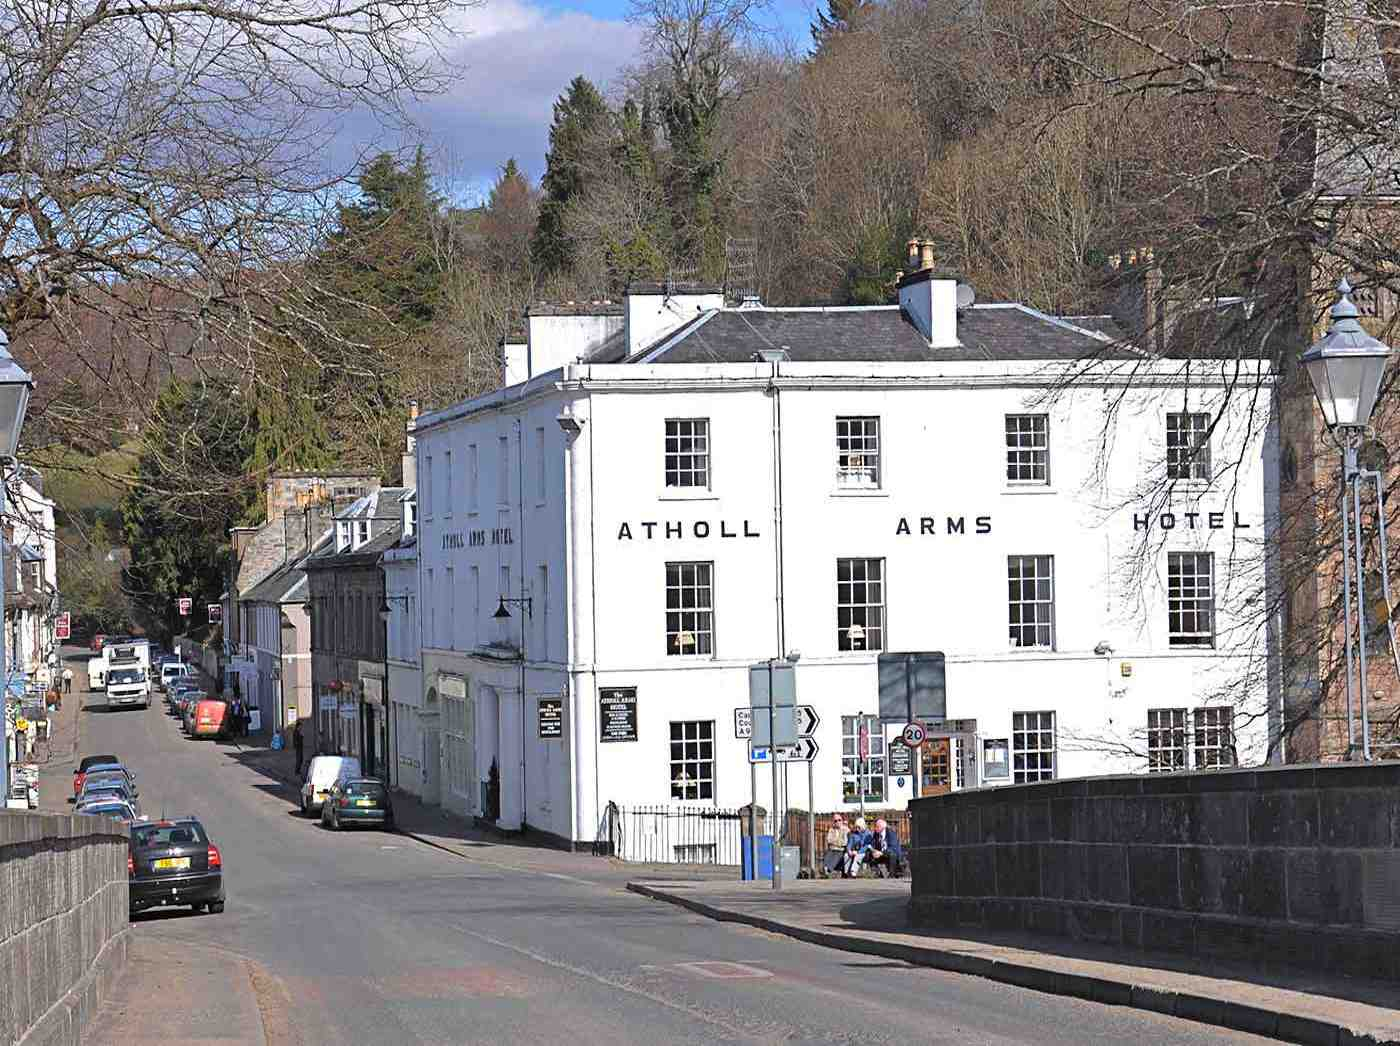 The Atholl Arms Hotel In Dunkeld